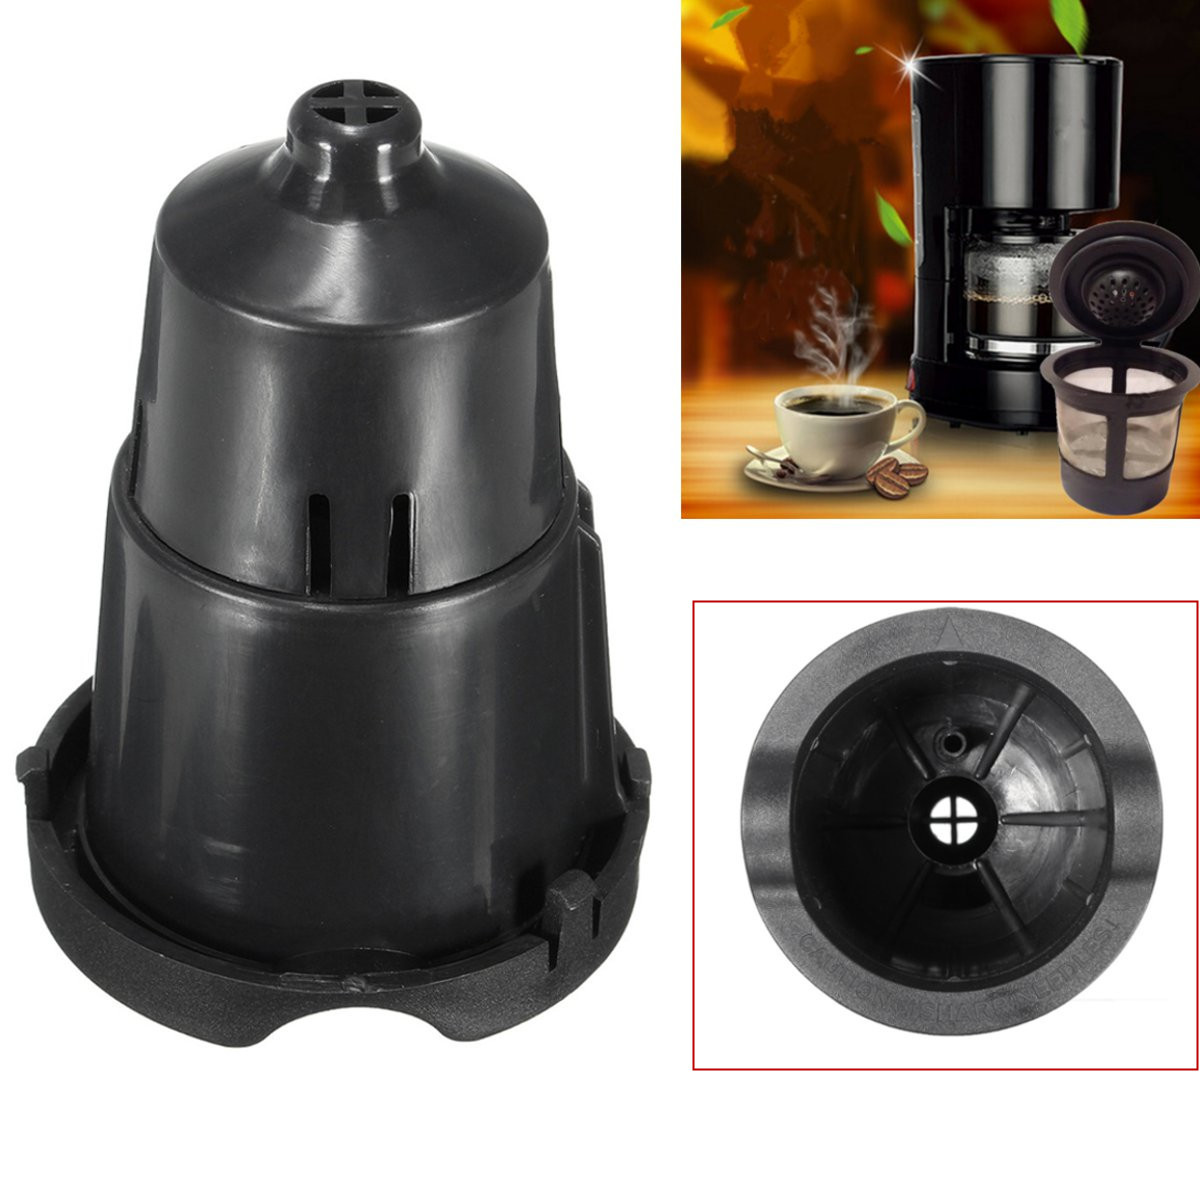 Universal Coffee Filter Replacement Holder For Keurig ...